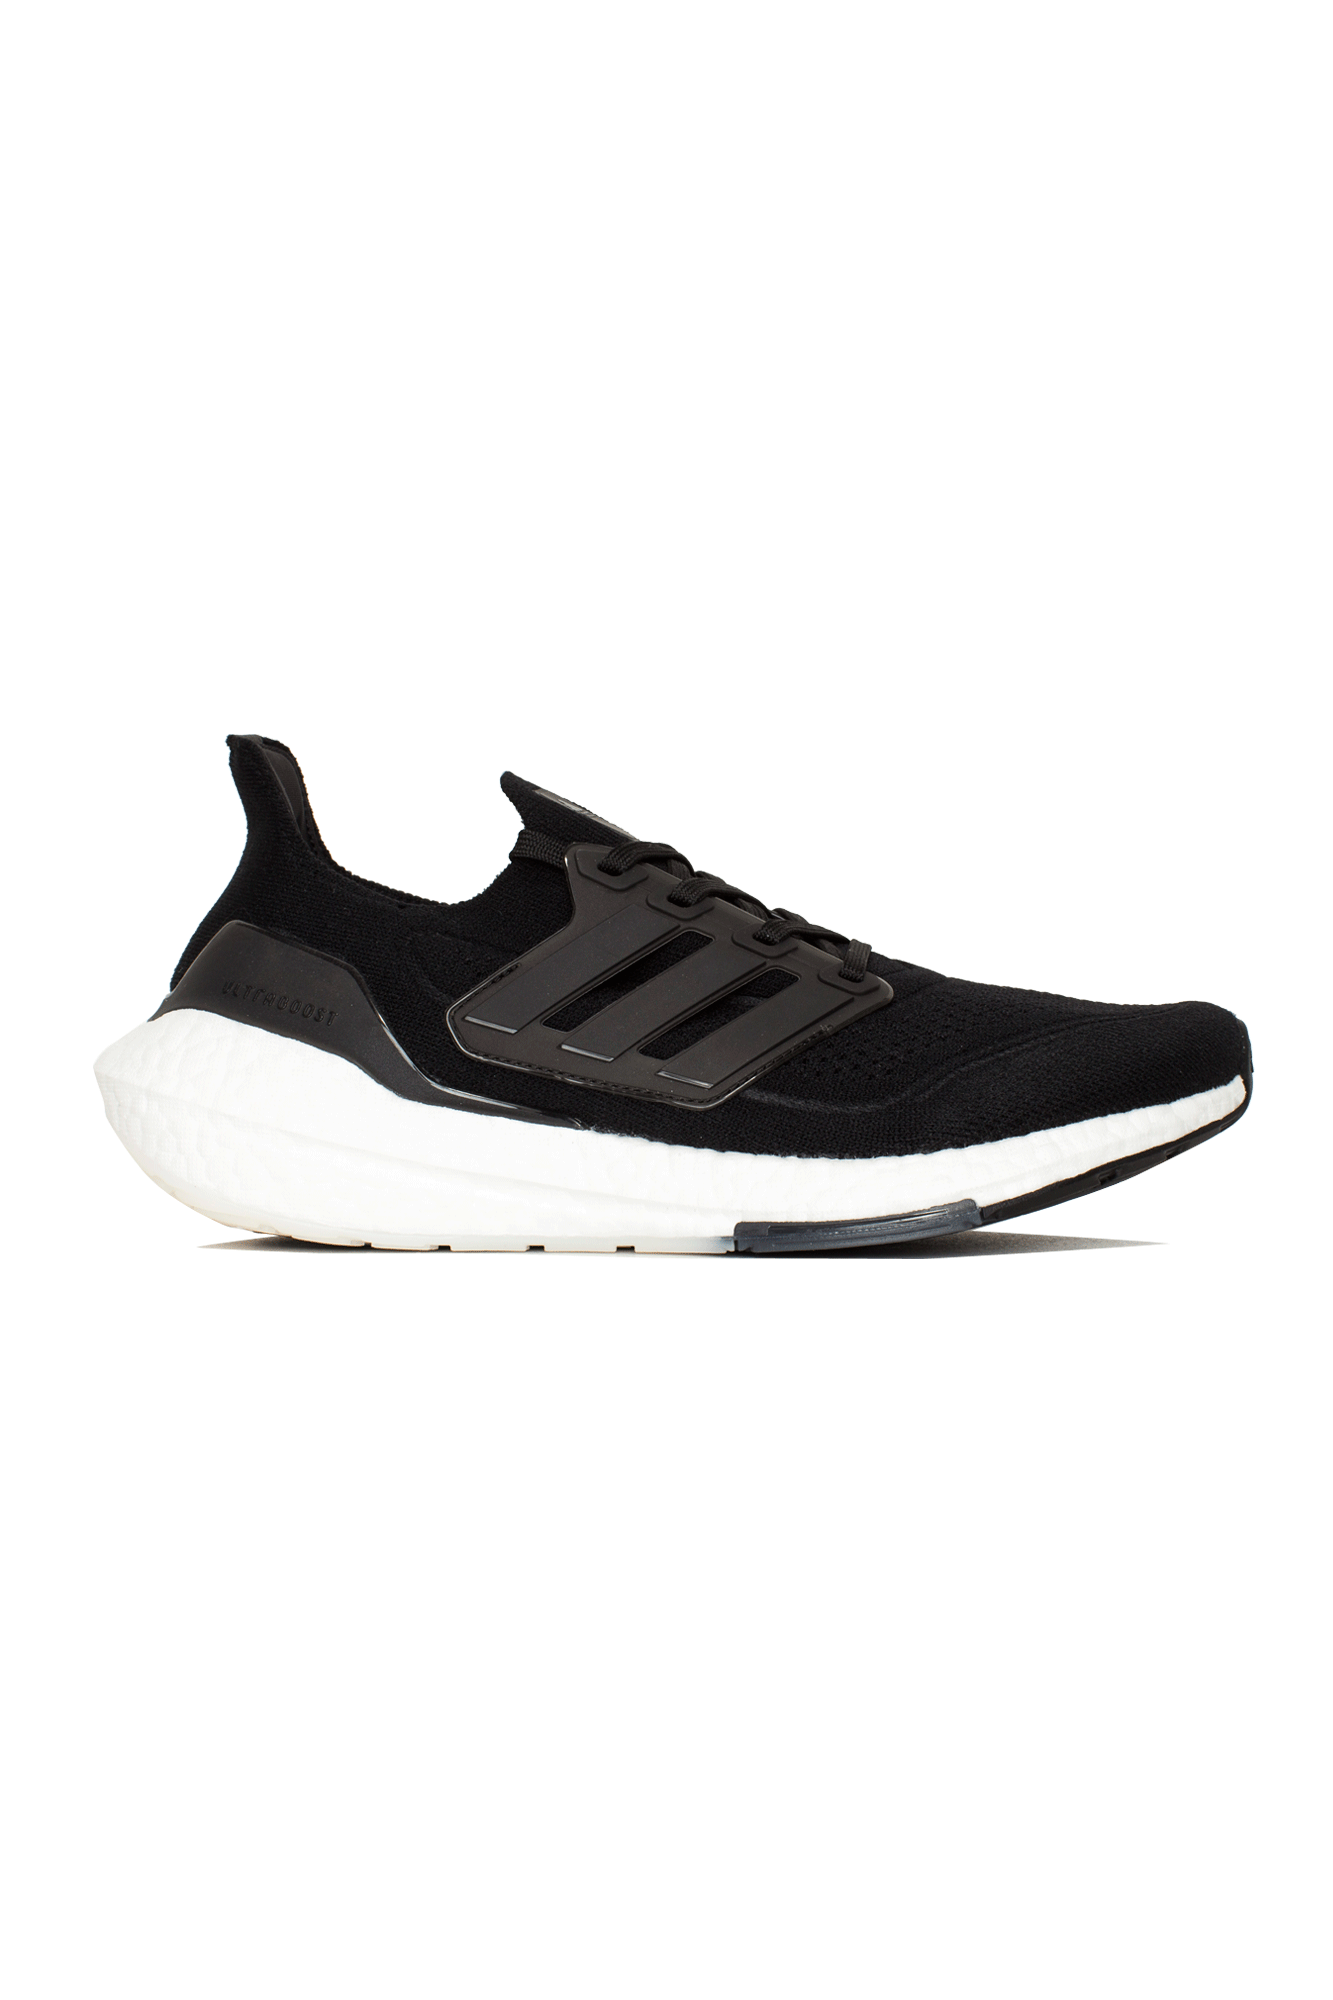 Adidas Originals Sneakers Ultraboost 21 Black FY0378#000#CBLACK#7 - One Block Down